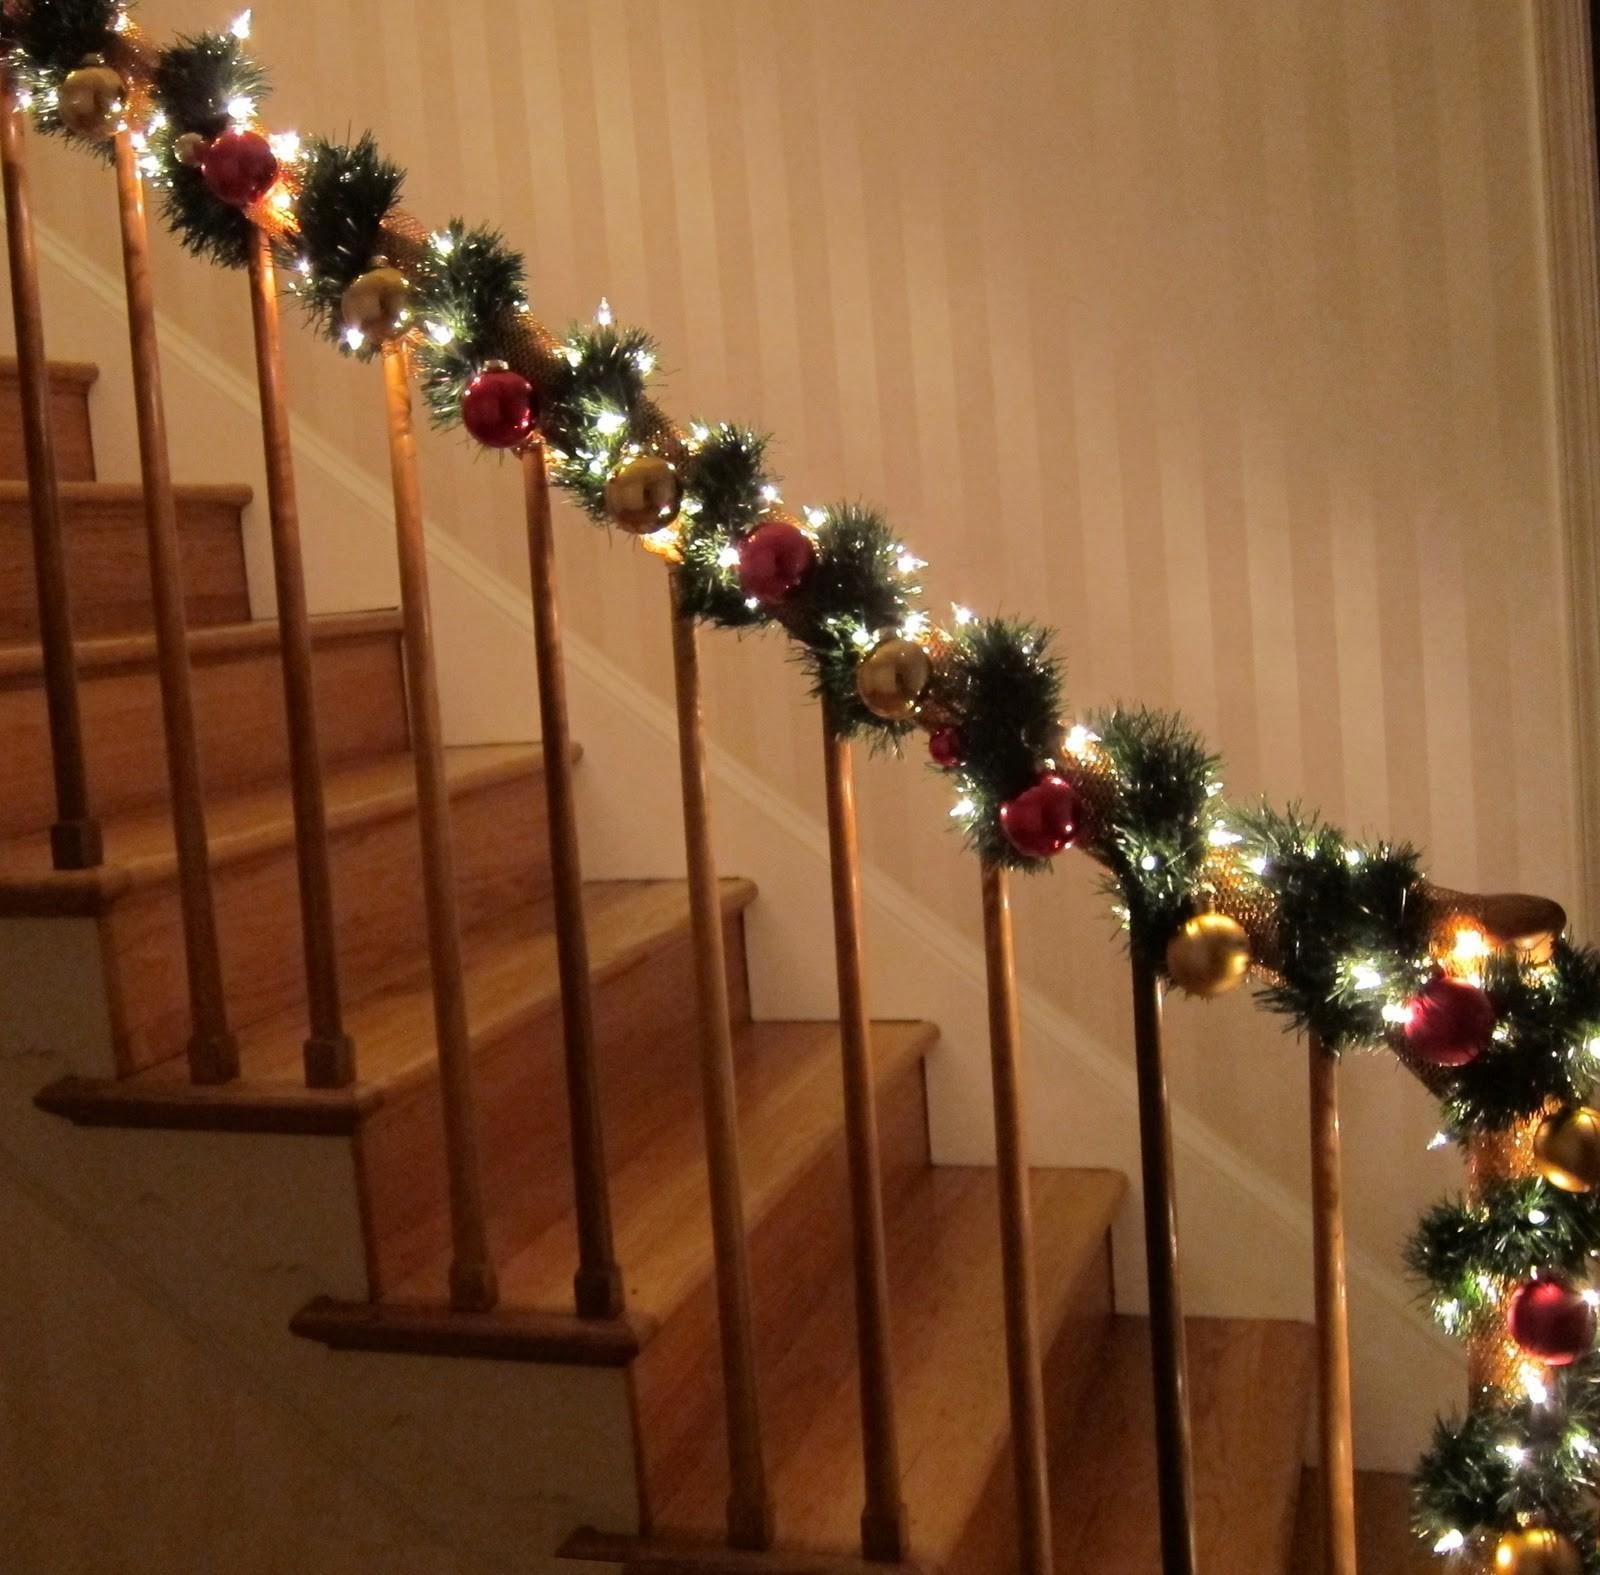 Christmas Decorations Banisters Neaucomic